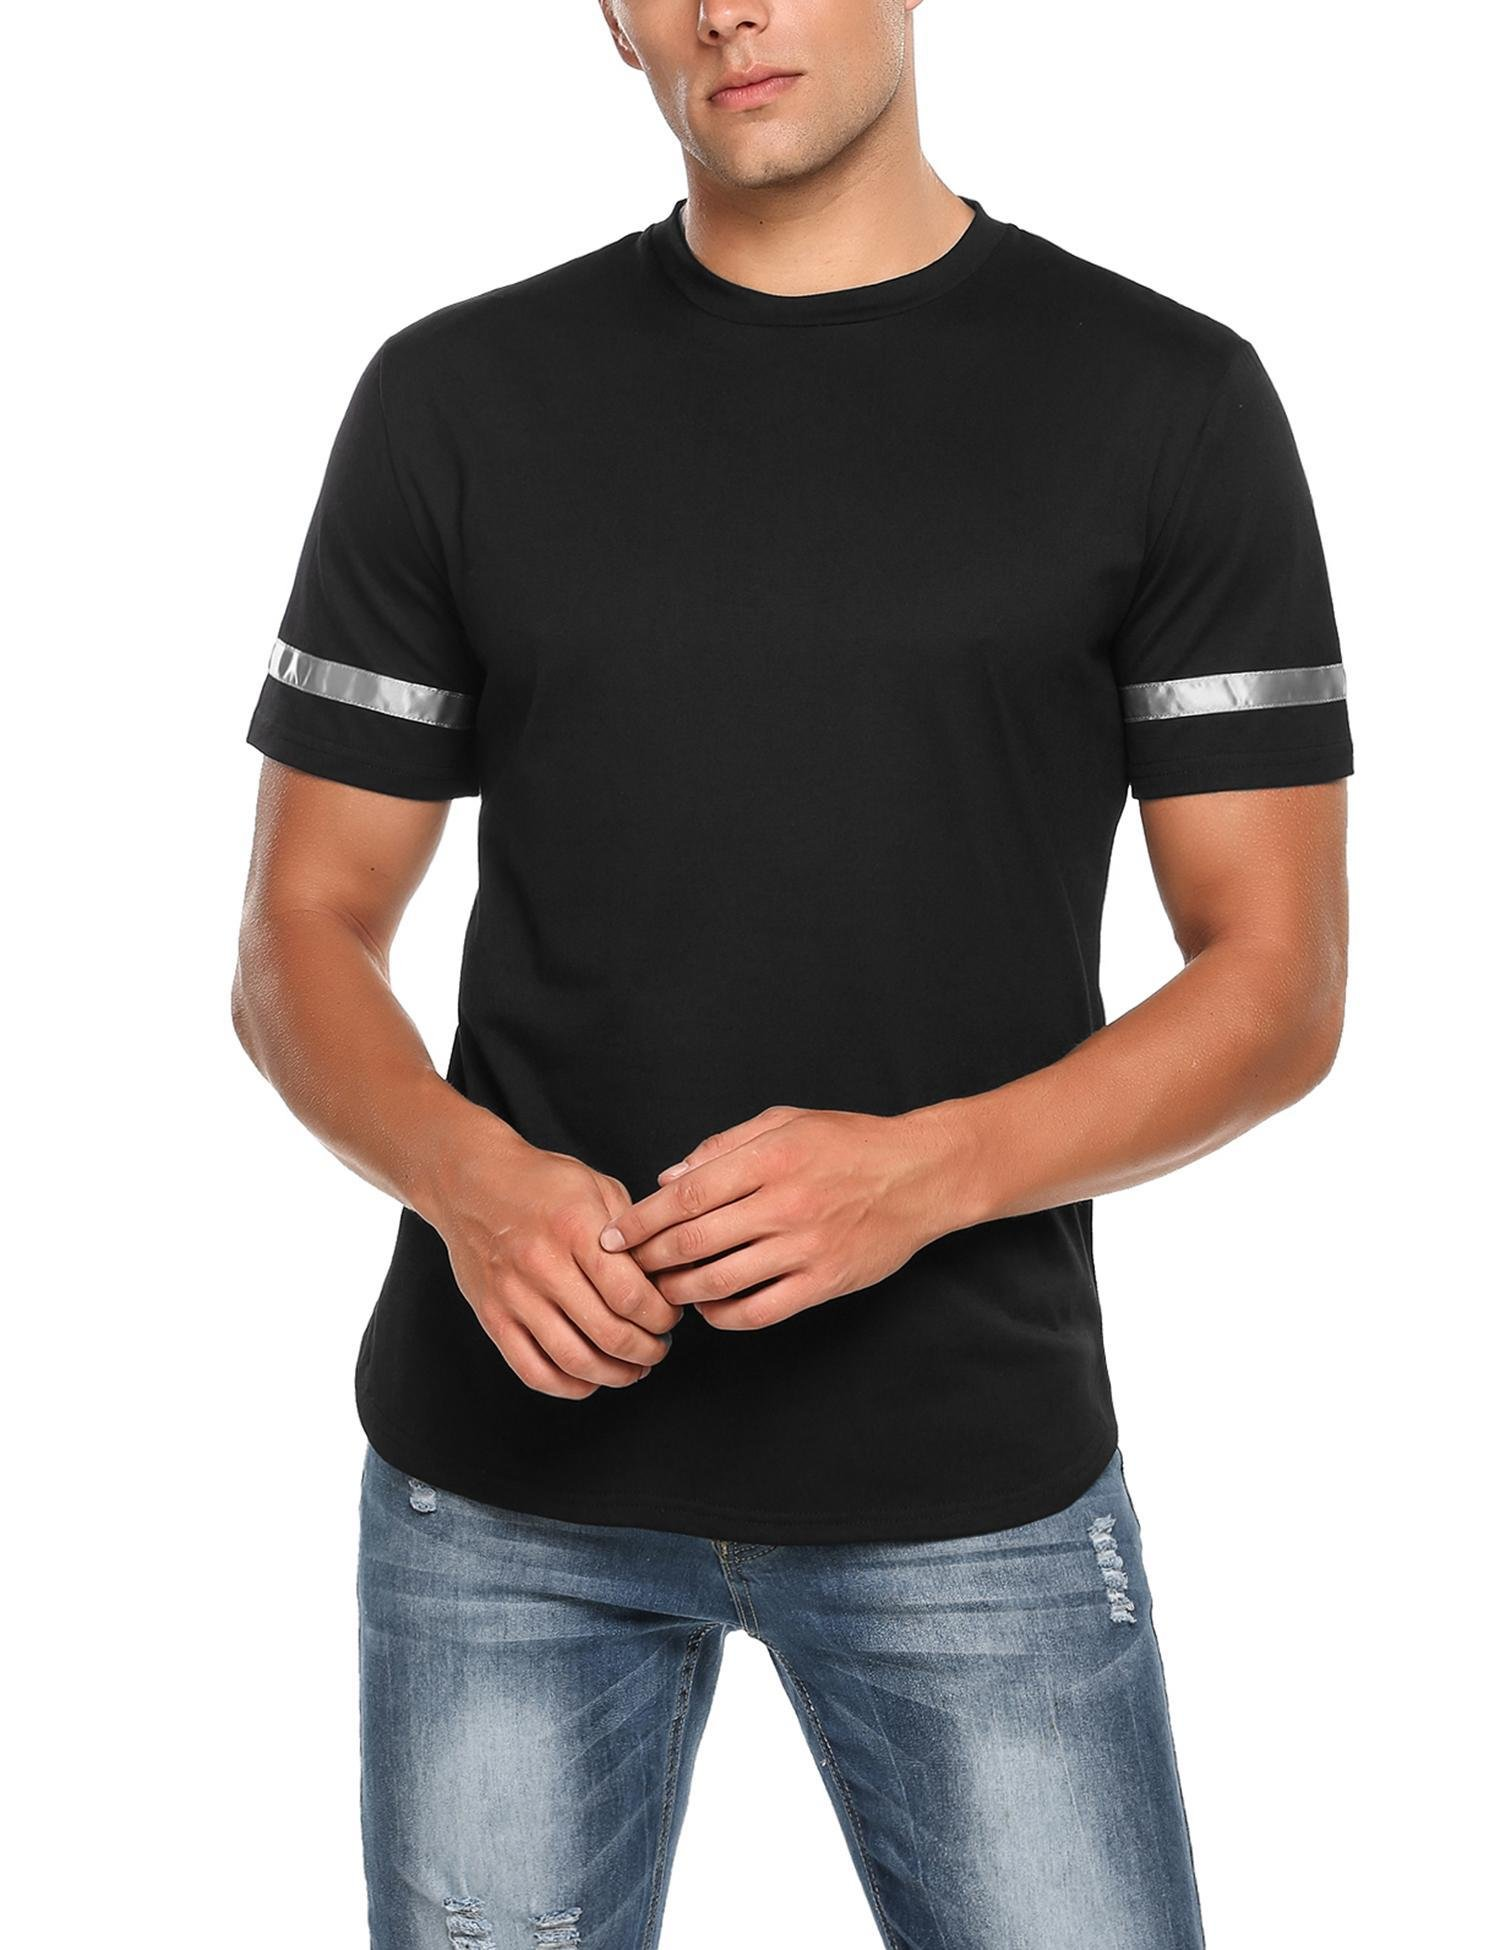 HOTOUCH Men's Crew Neck Rugged Outdoor Summer Short Sleeve Causal Stripes T-Shirt,Black,Small